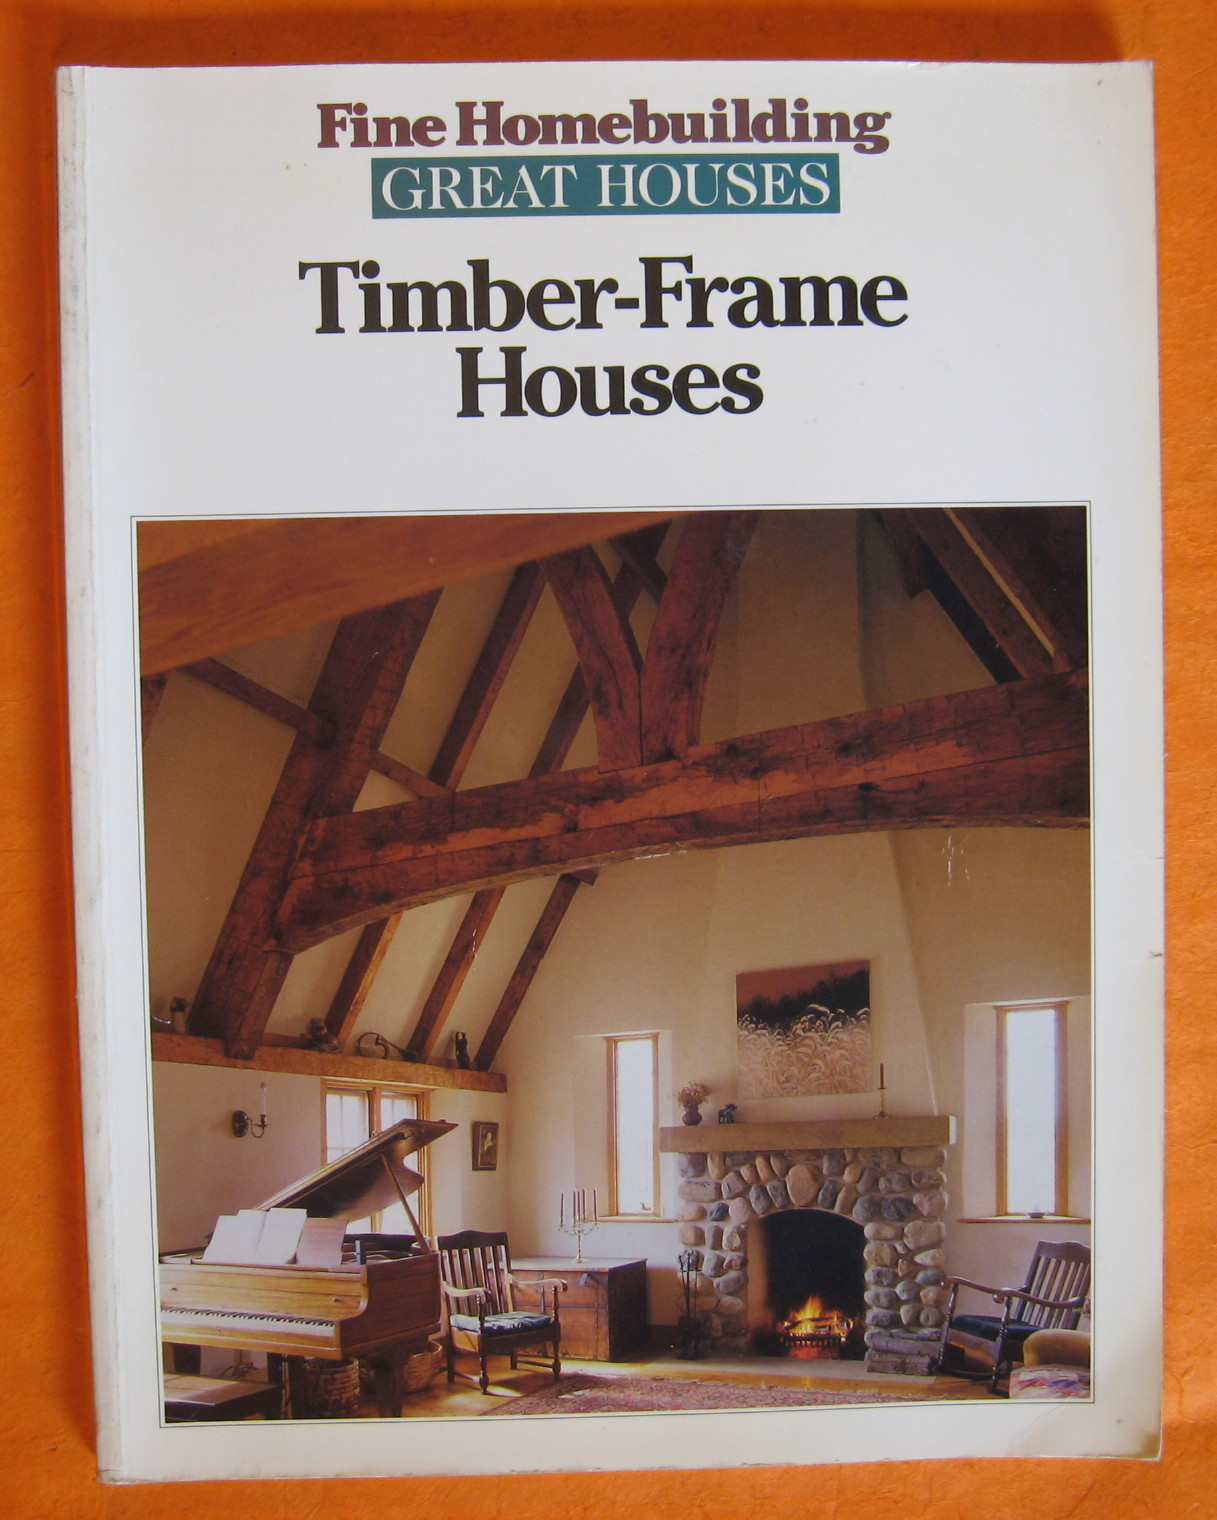 Timber-Frame Houses (Great Houses), Fine Homebuilding